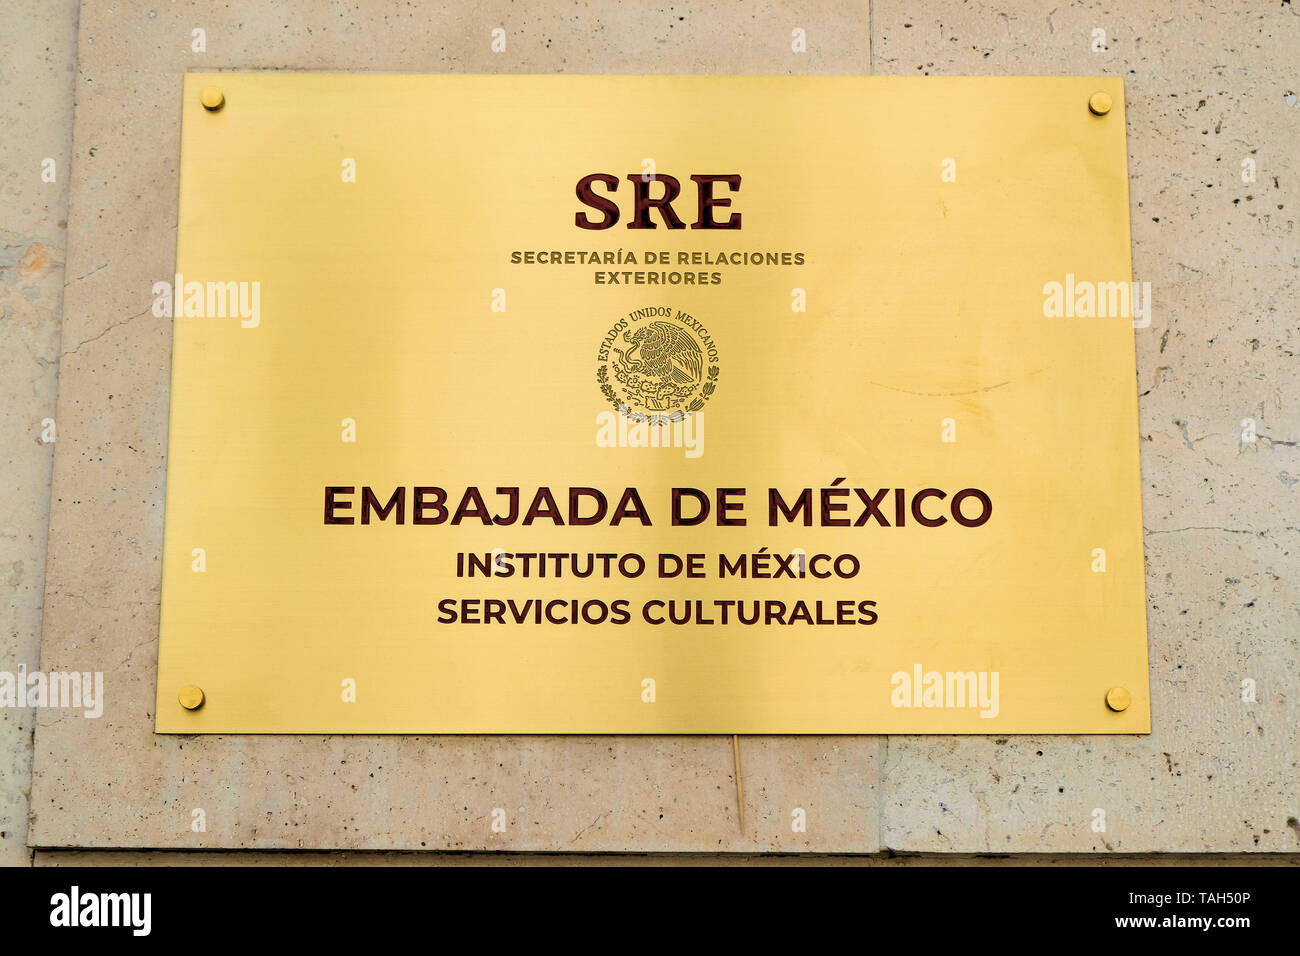 Plaque outside the Mexican Embassy in Madrid, Spain; Cultural attache office sign at the Mexican Embassy in Spain. - Stock Image